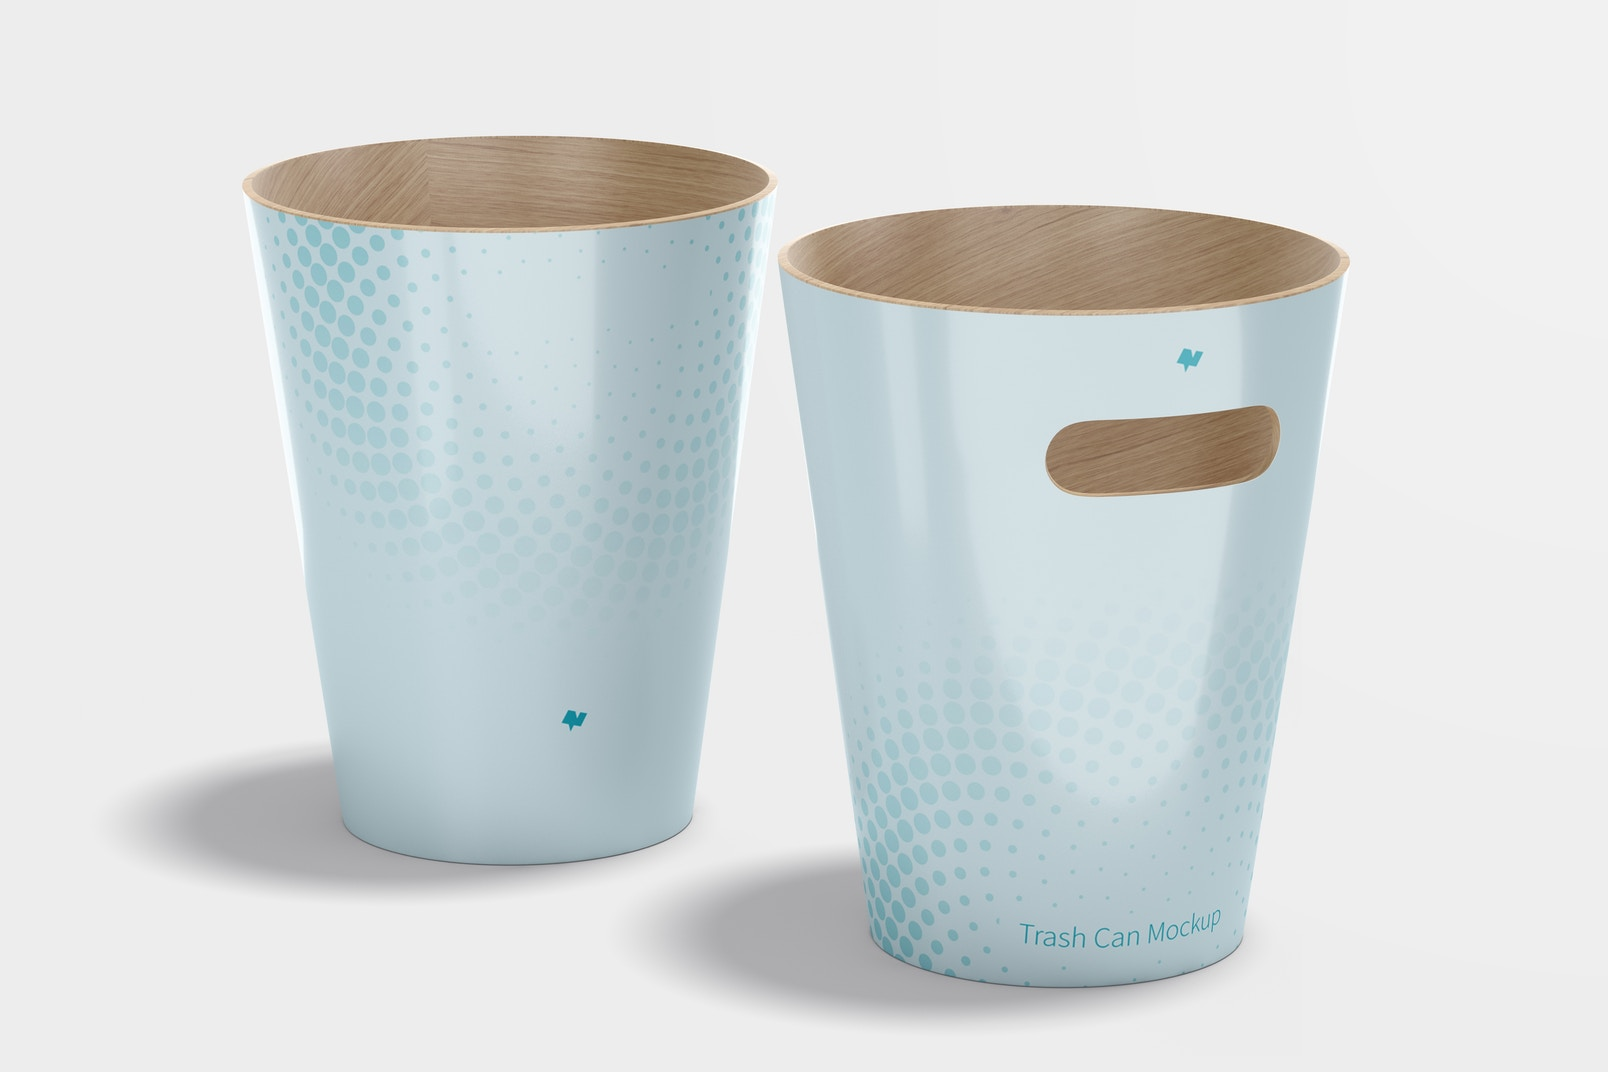 Wood Trash Can Mockup, Front and Back